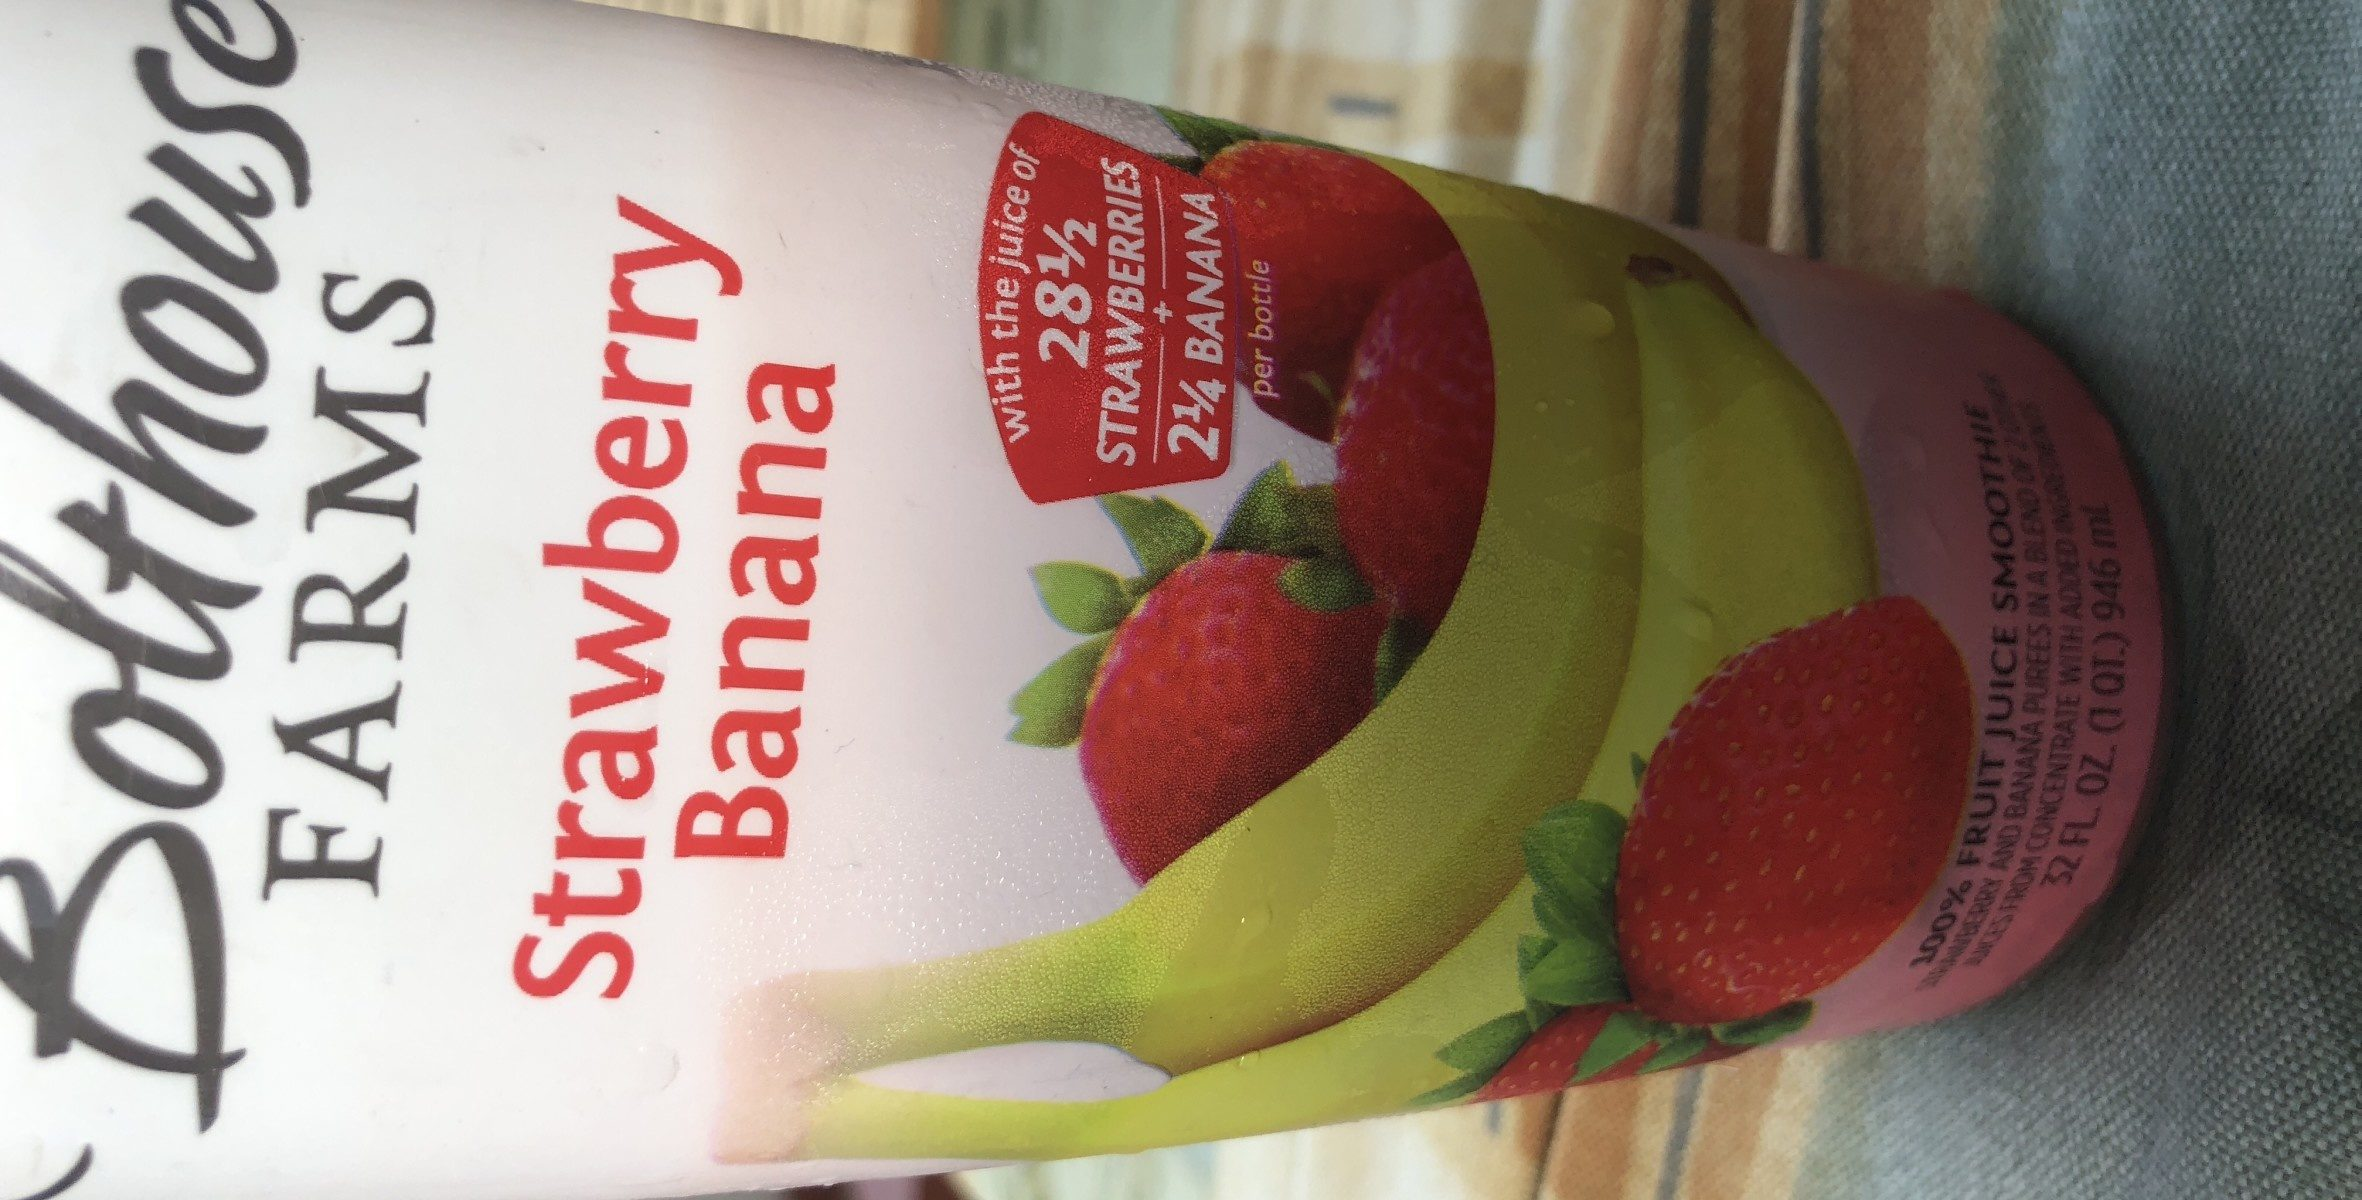 Strawberry banana - Ingredients - fr